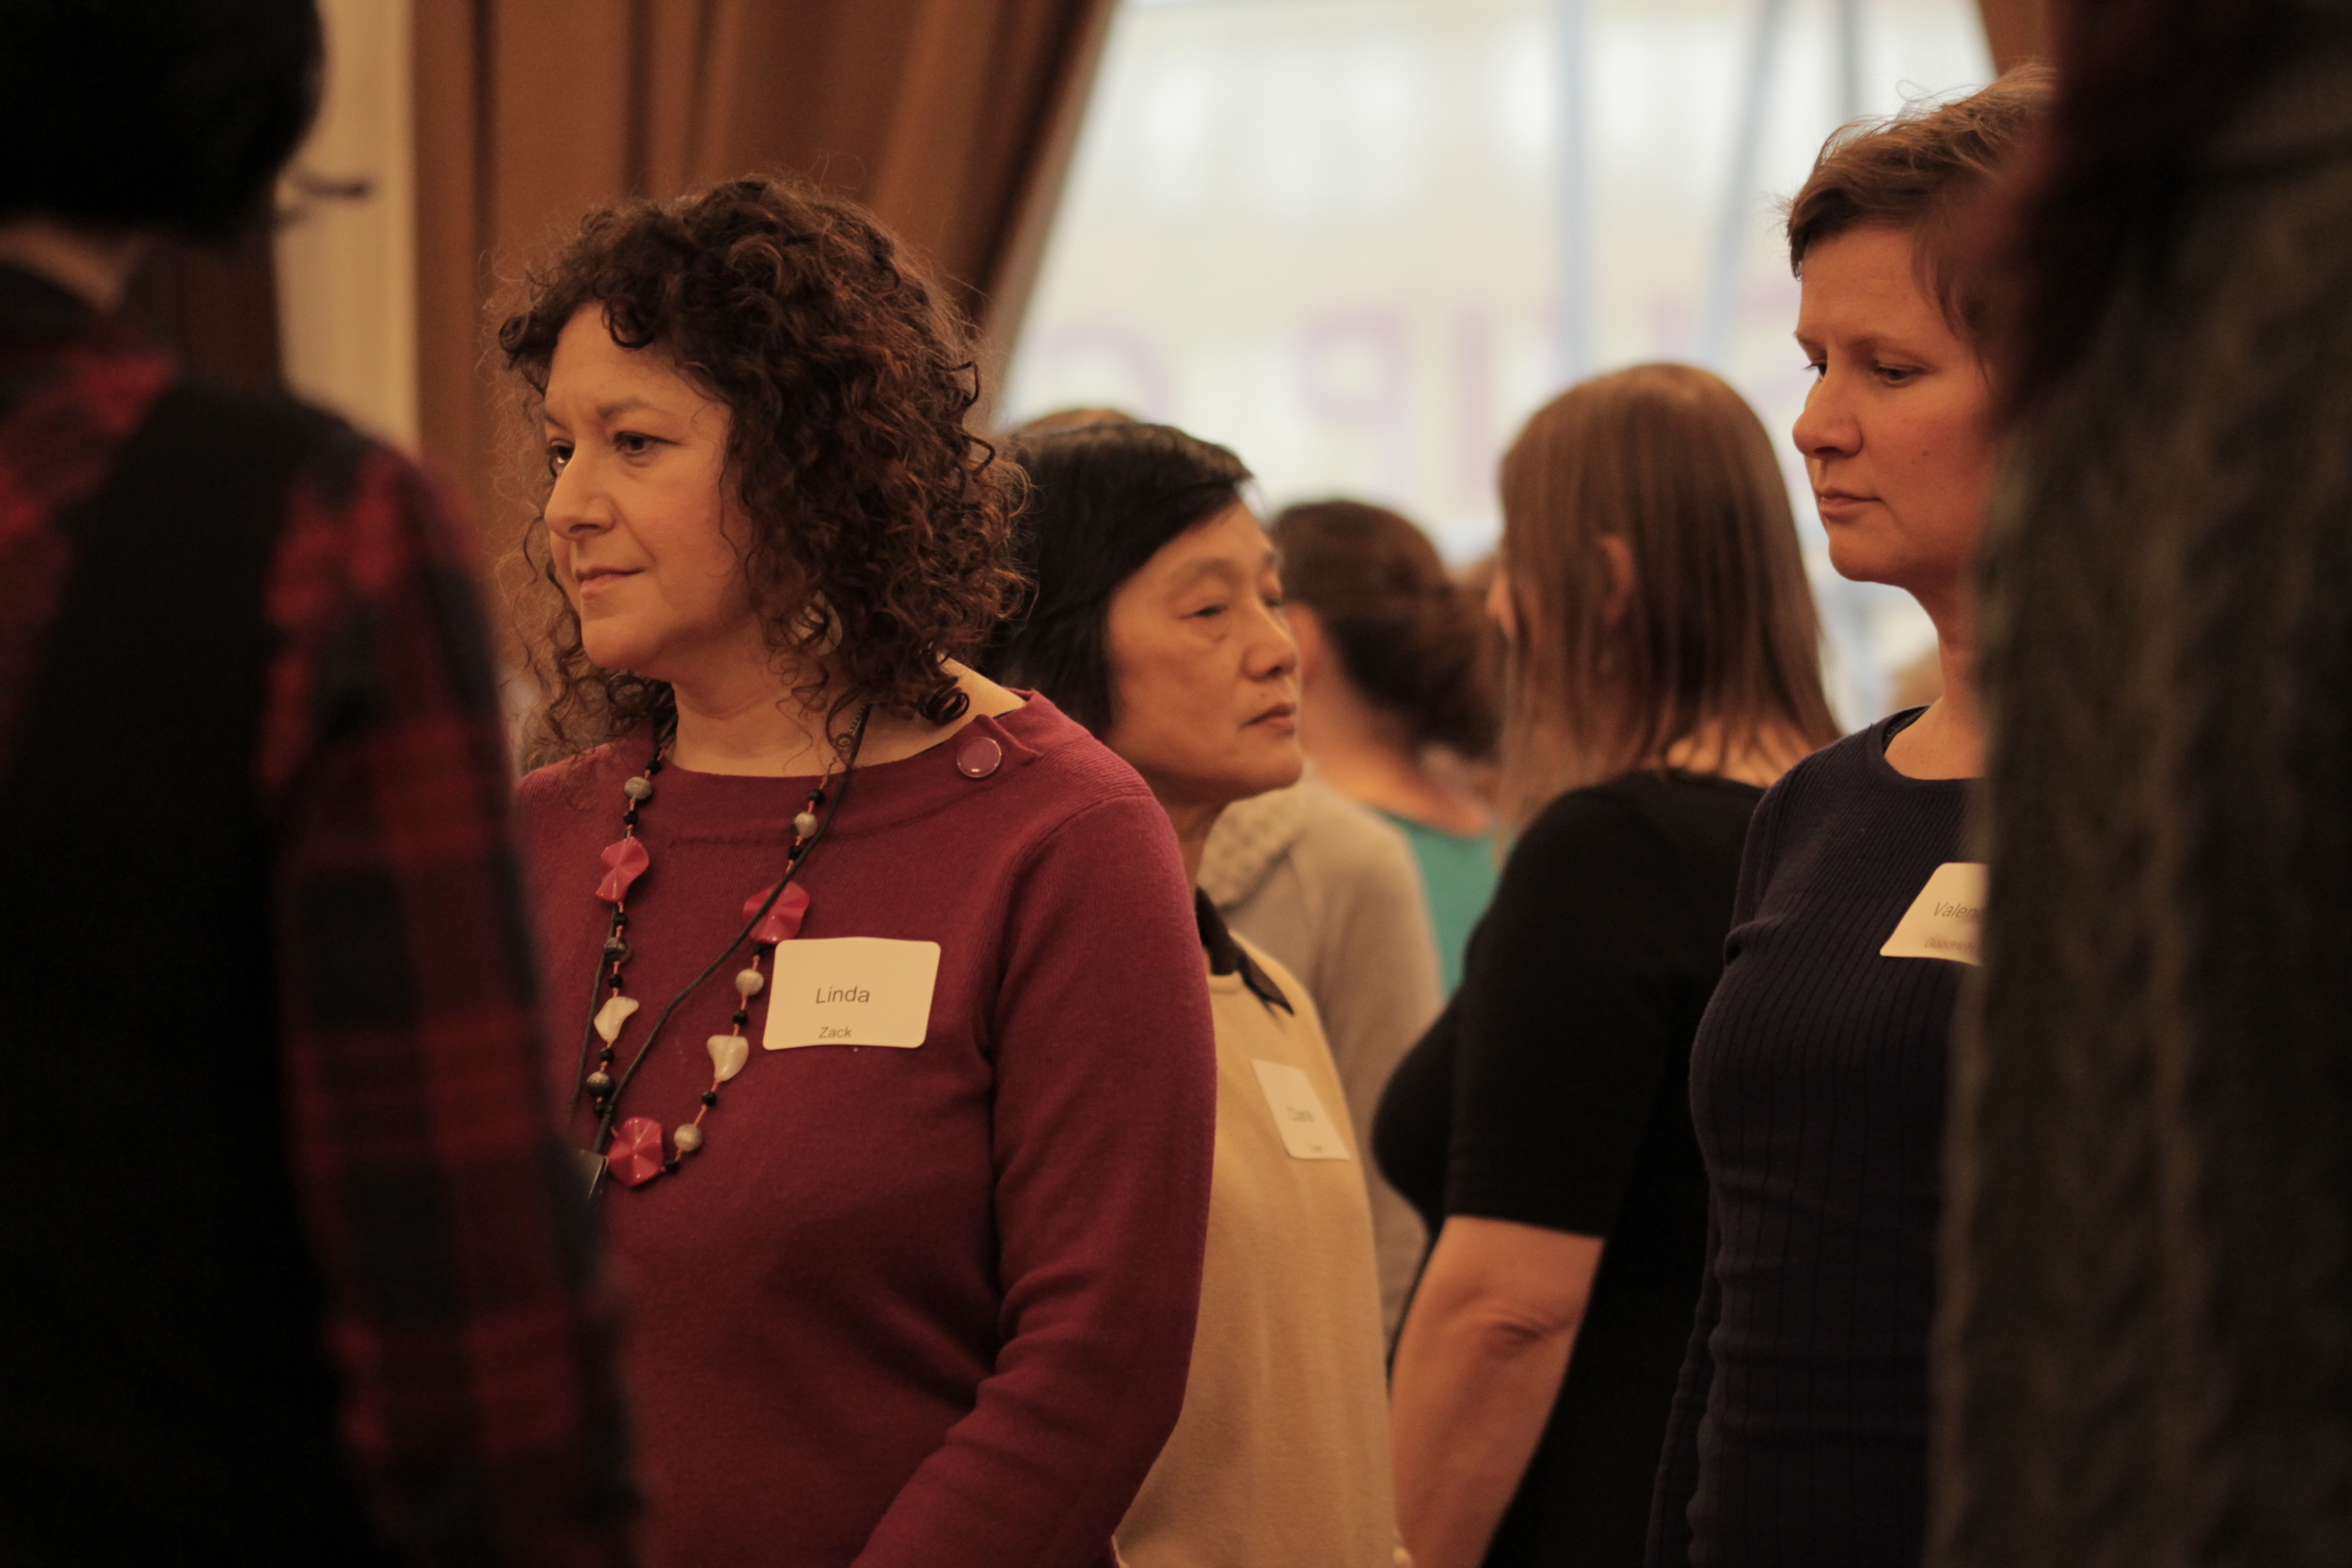 The group reconfigure themselves during the afternoon workshop. Image courtesy of the British Gestalt J  ournal.